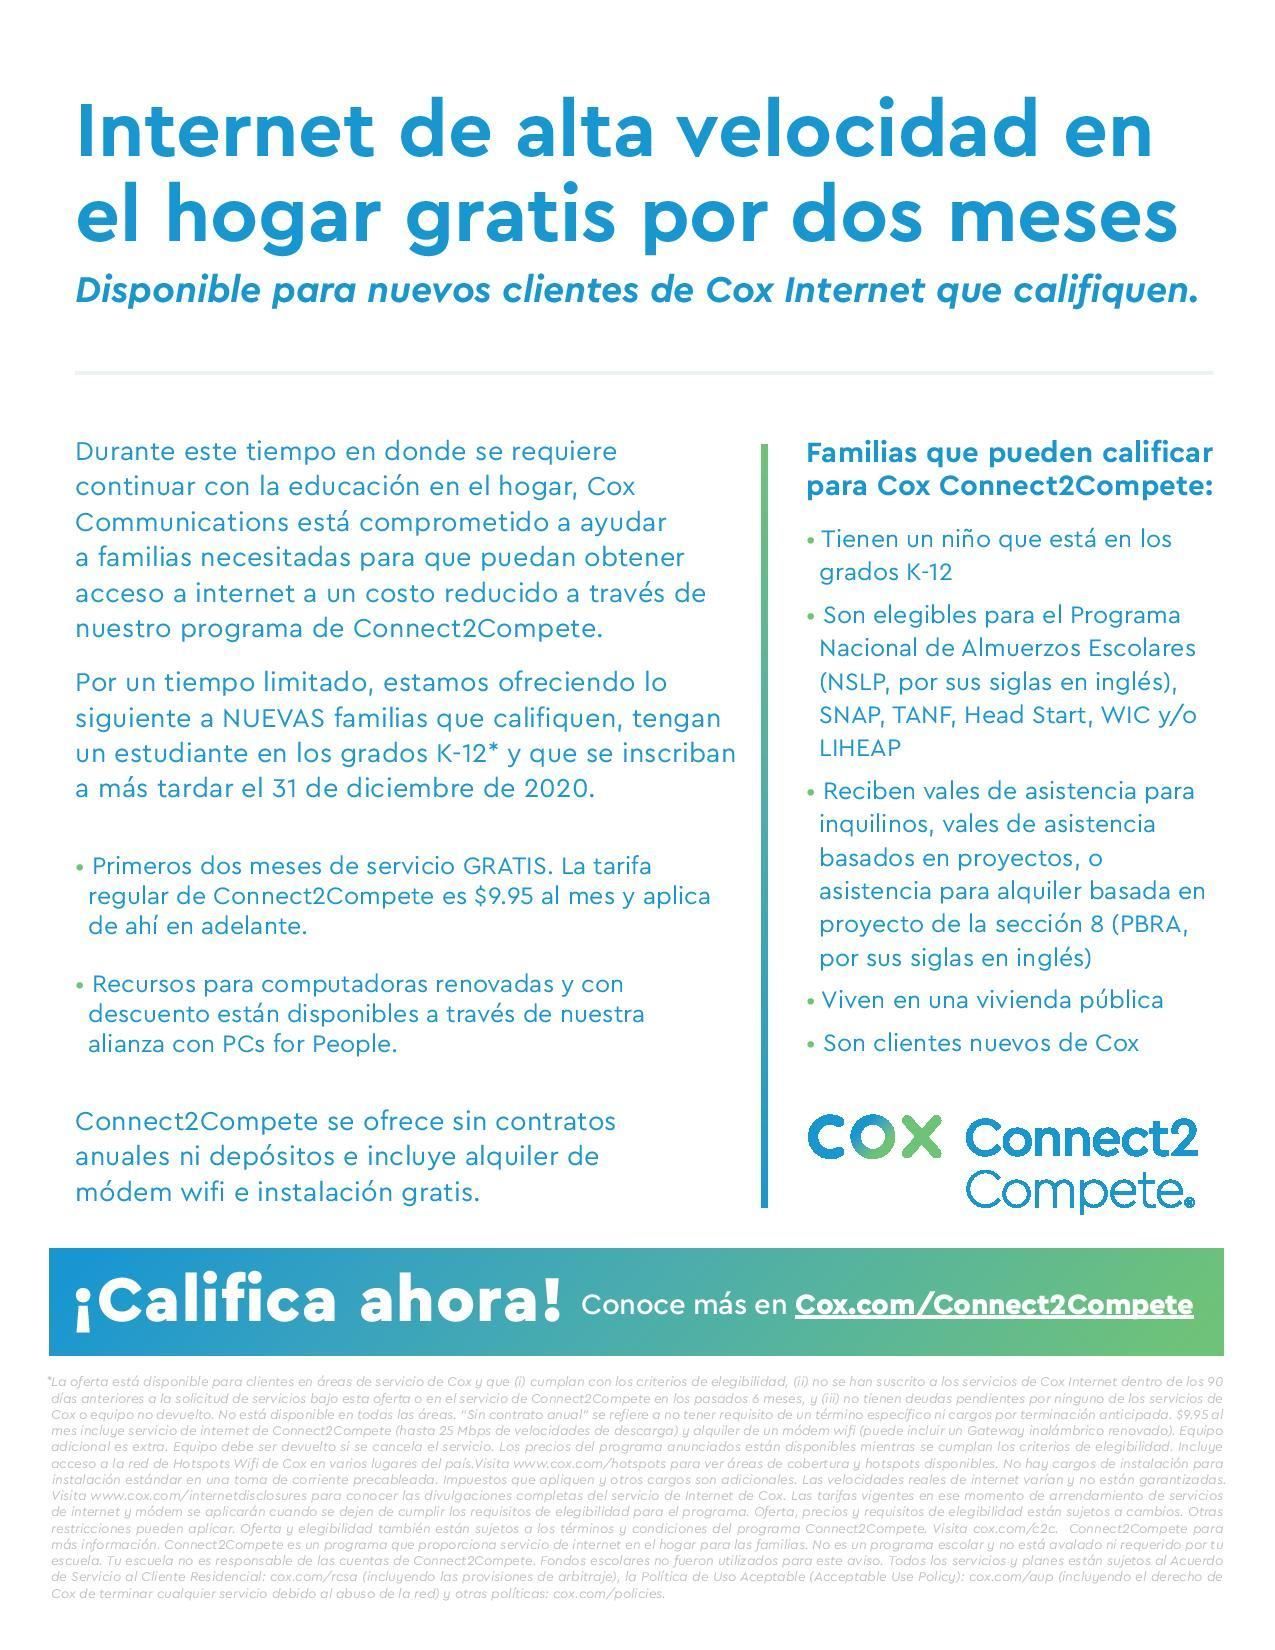 Cox Connect2Compete Spanish